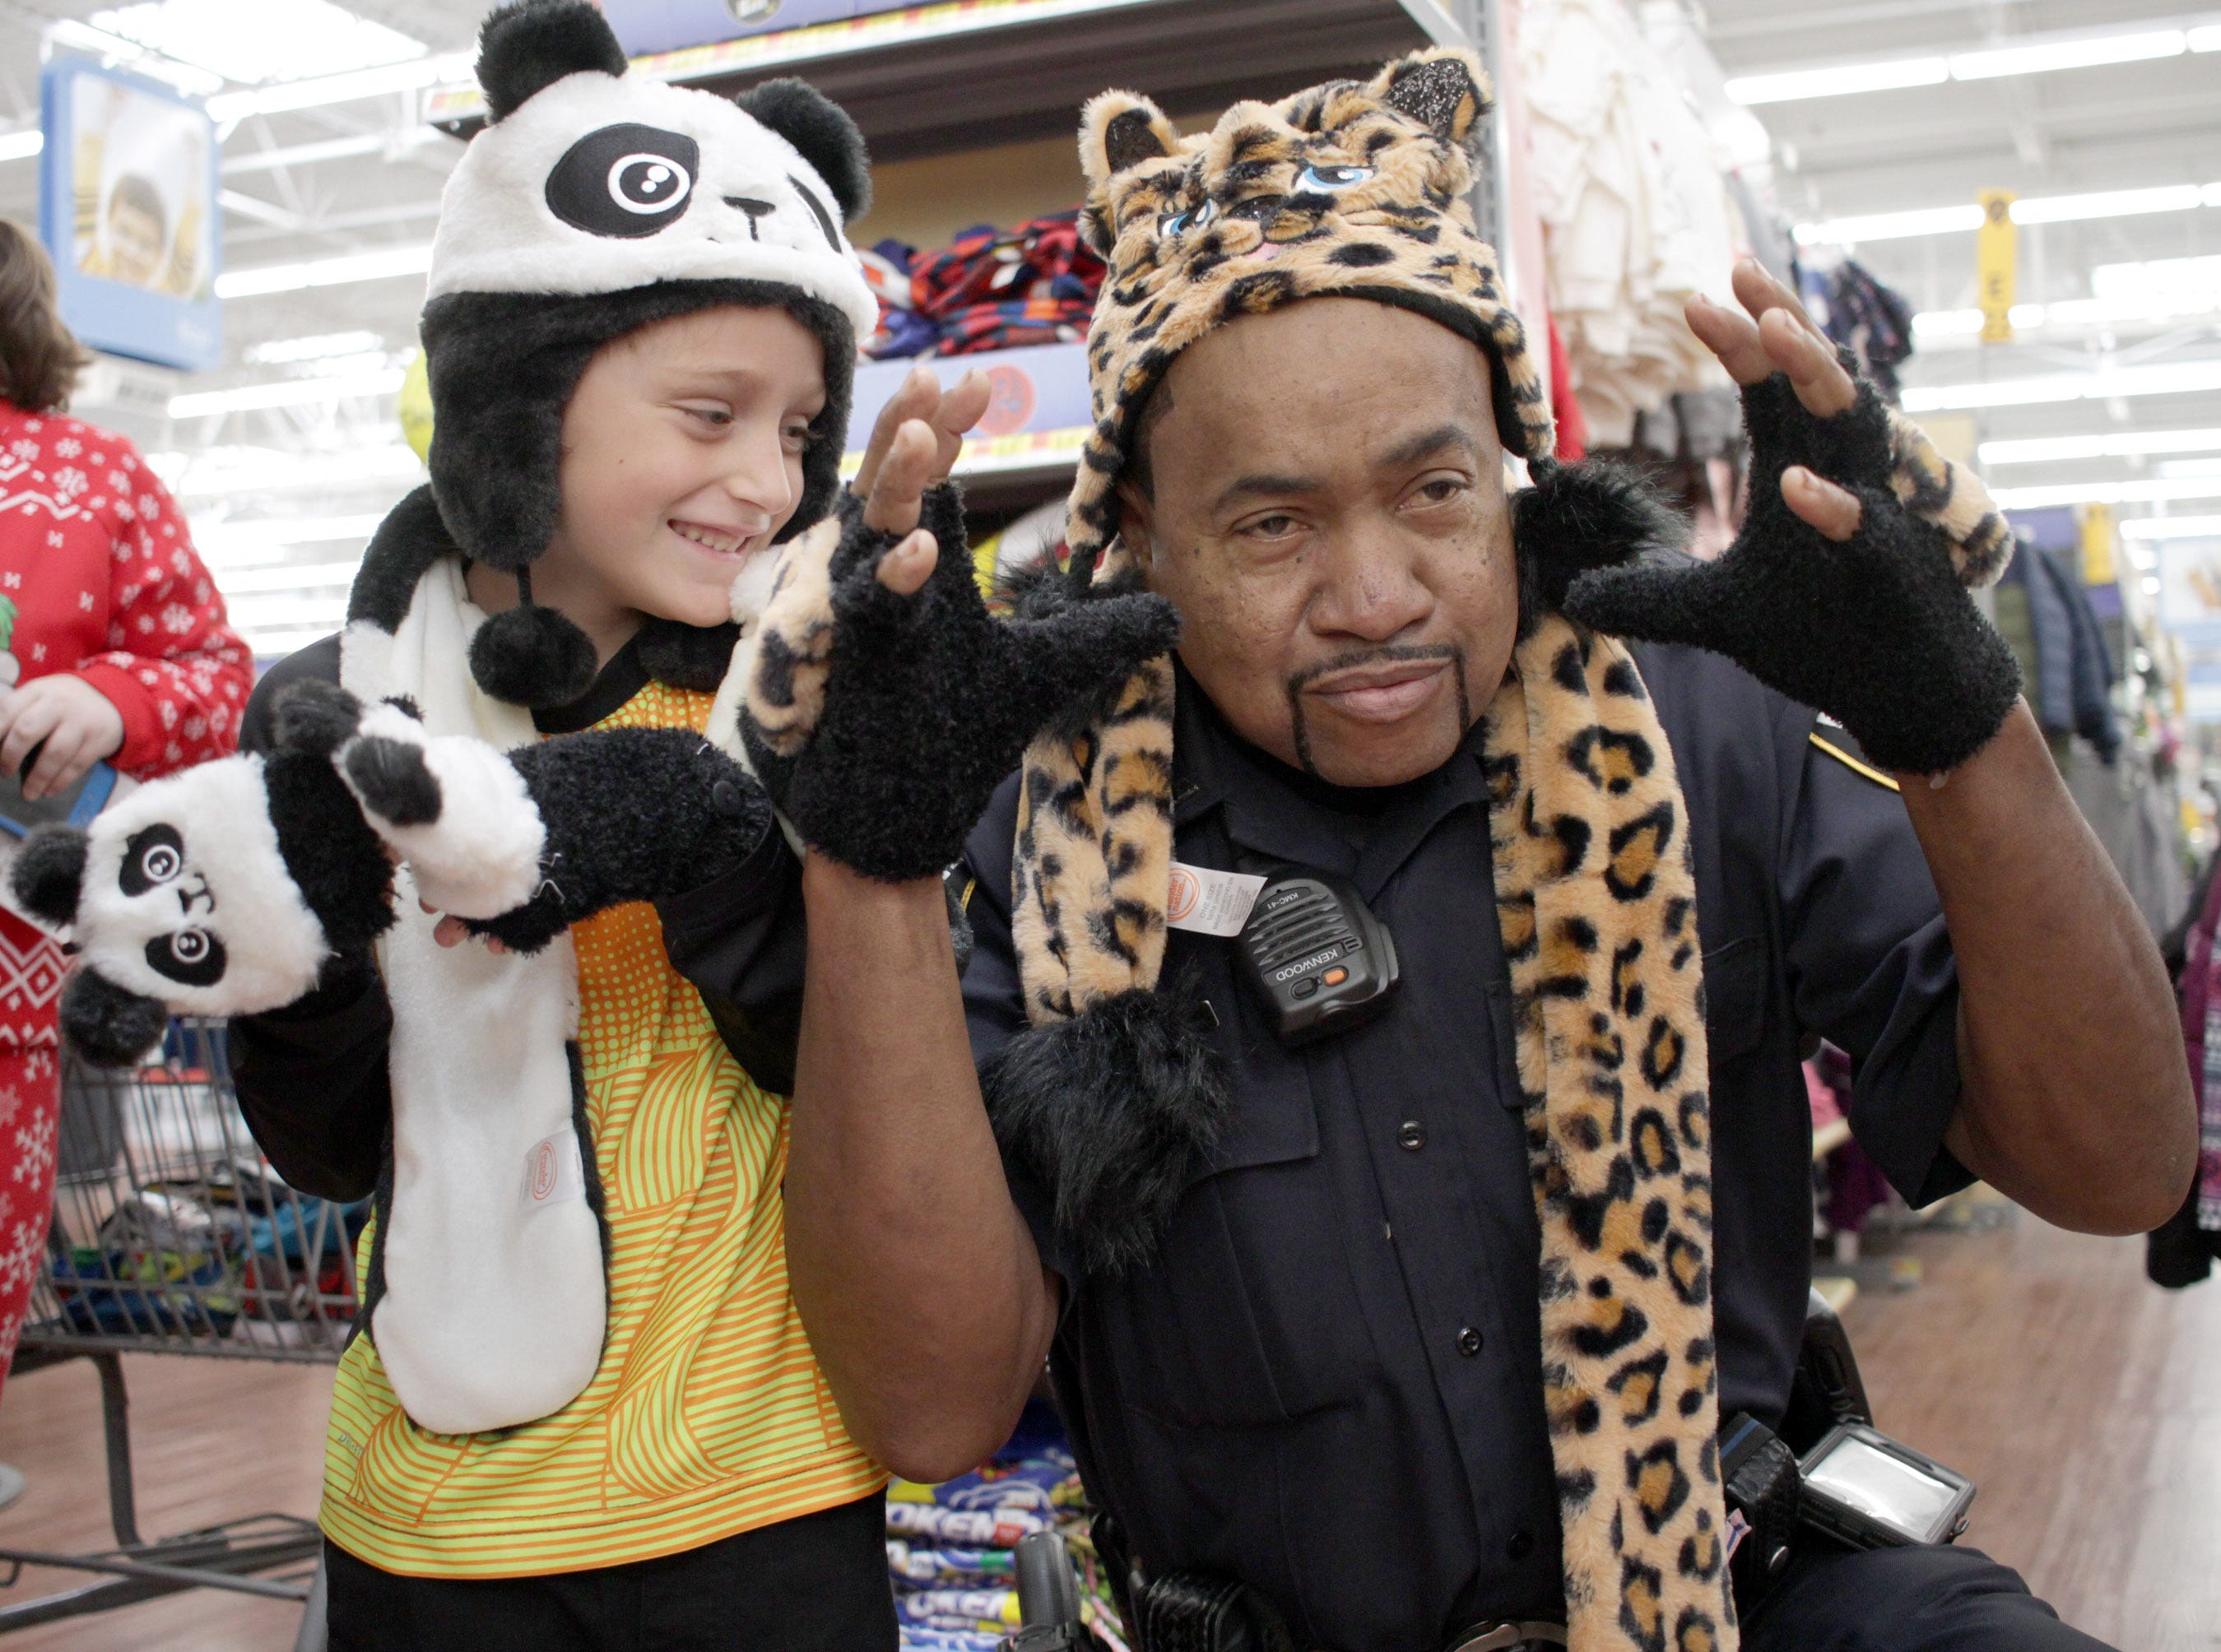 Richard Allens is amused at Officer JT Smith's impersonation of CATS during Shop with a Cop in Ashland City on Saturday, December 15, 2018.